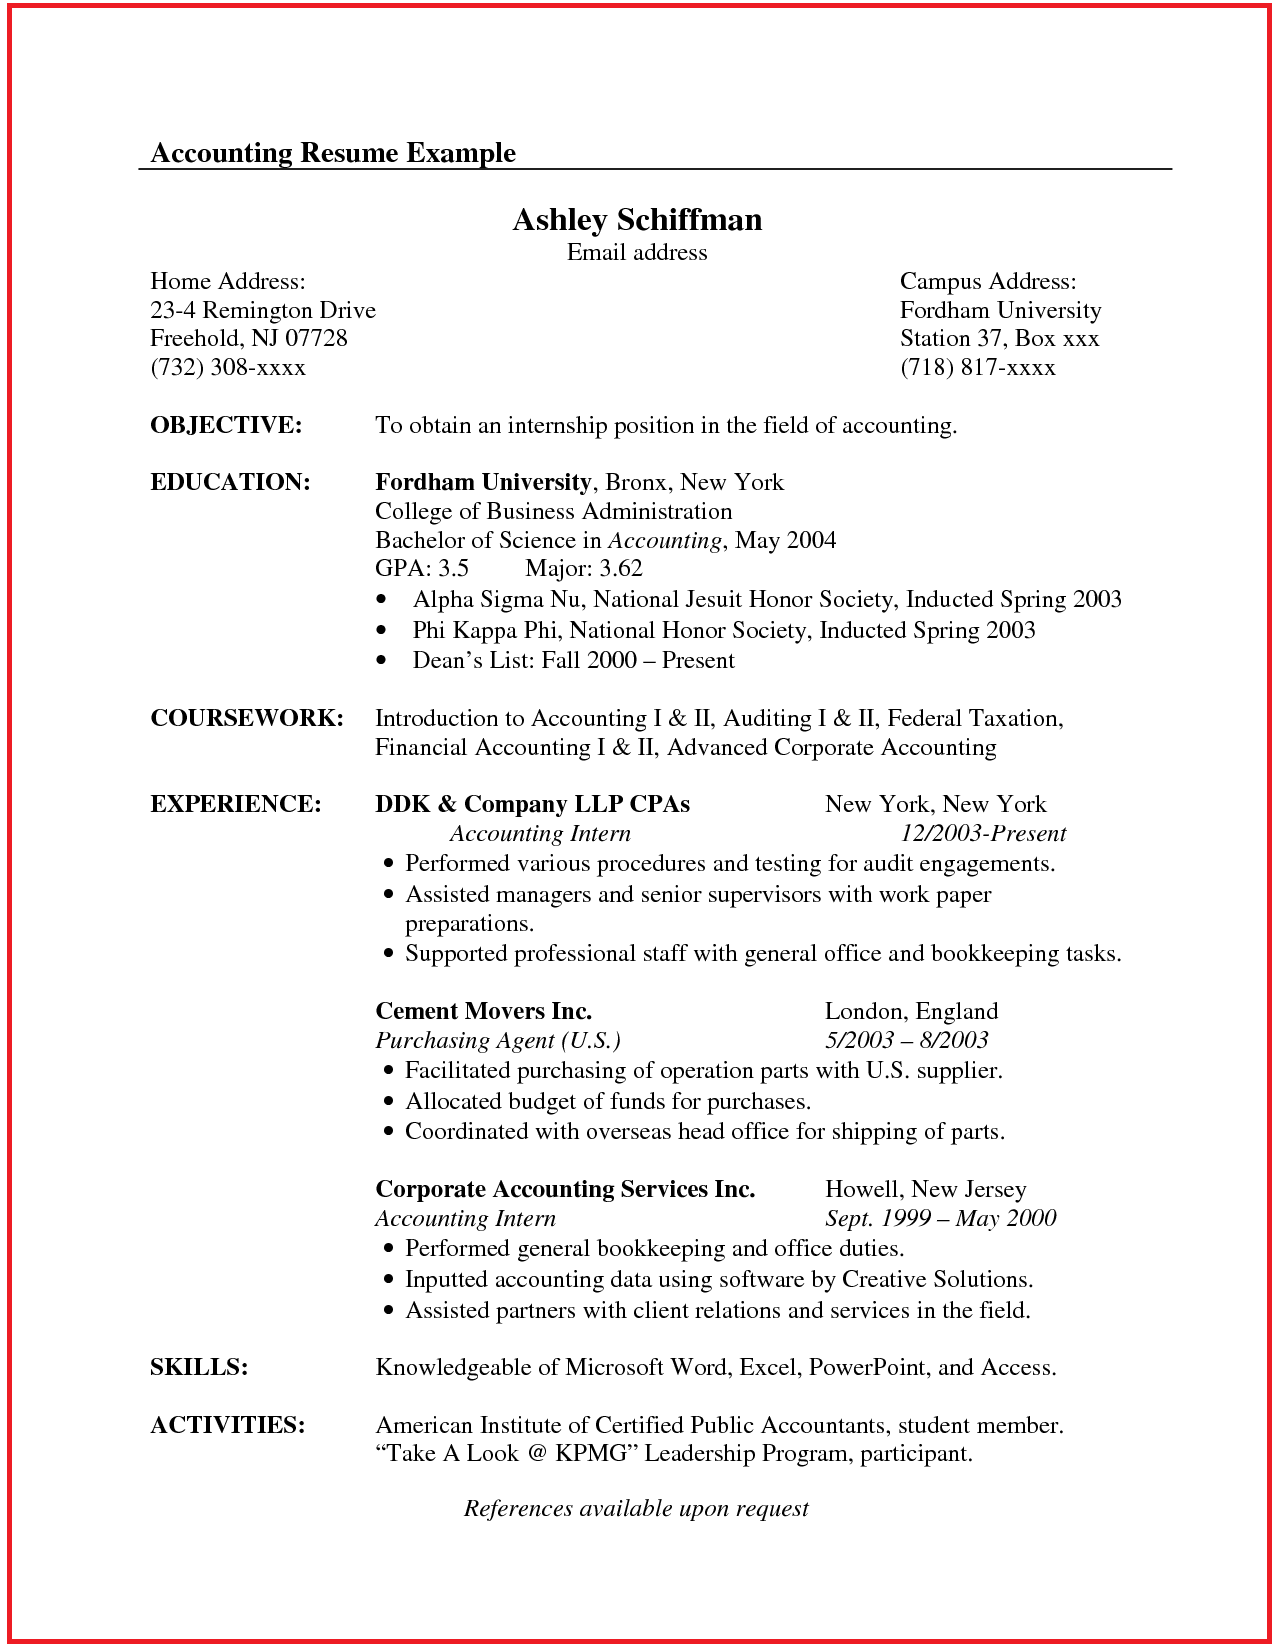 Accountant Resume Sample Canada - http://www.jobresume.website ...